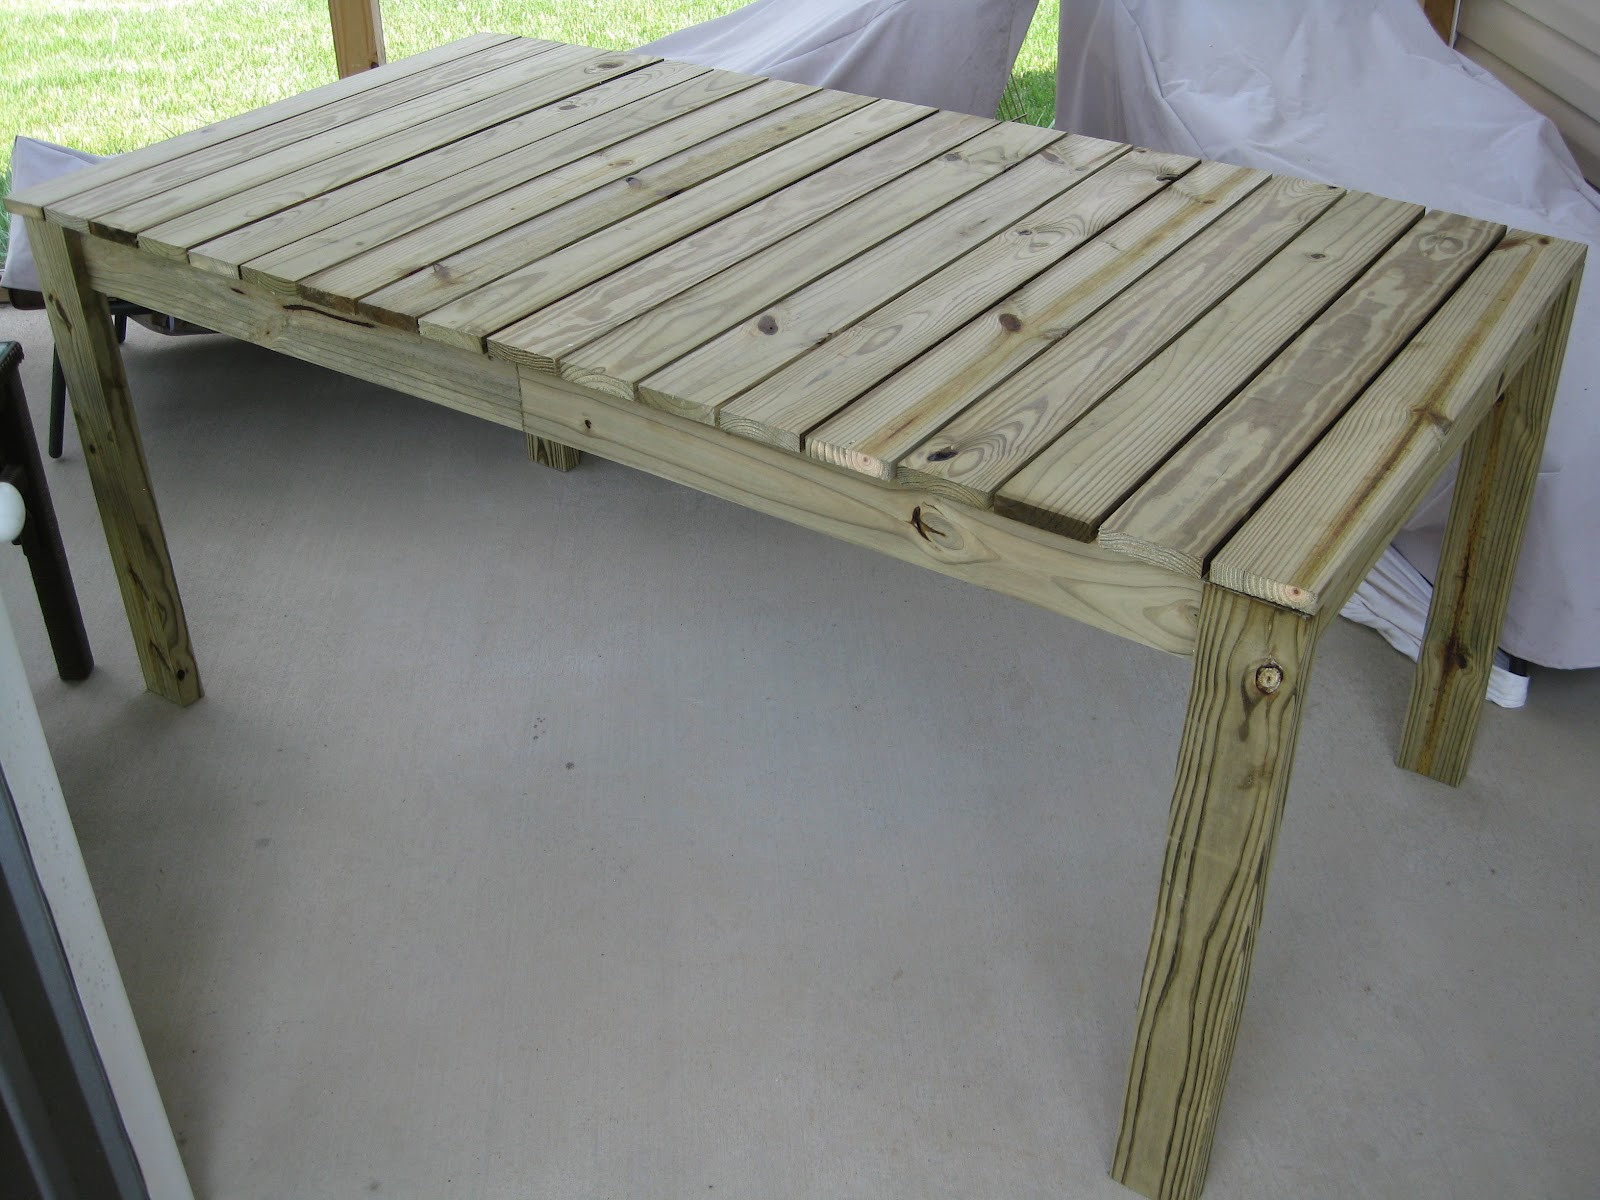 DIY Outdoor Wooden Table  DIY wooden outdoor dining table LaForce Be With You